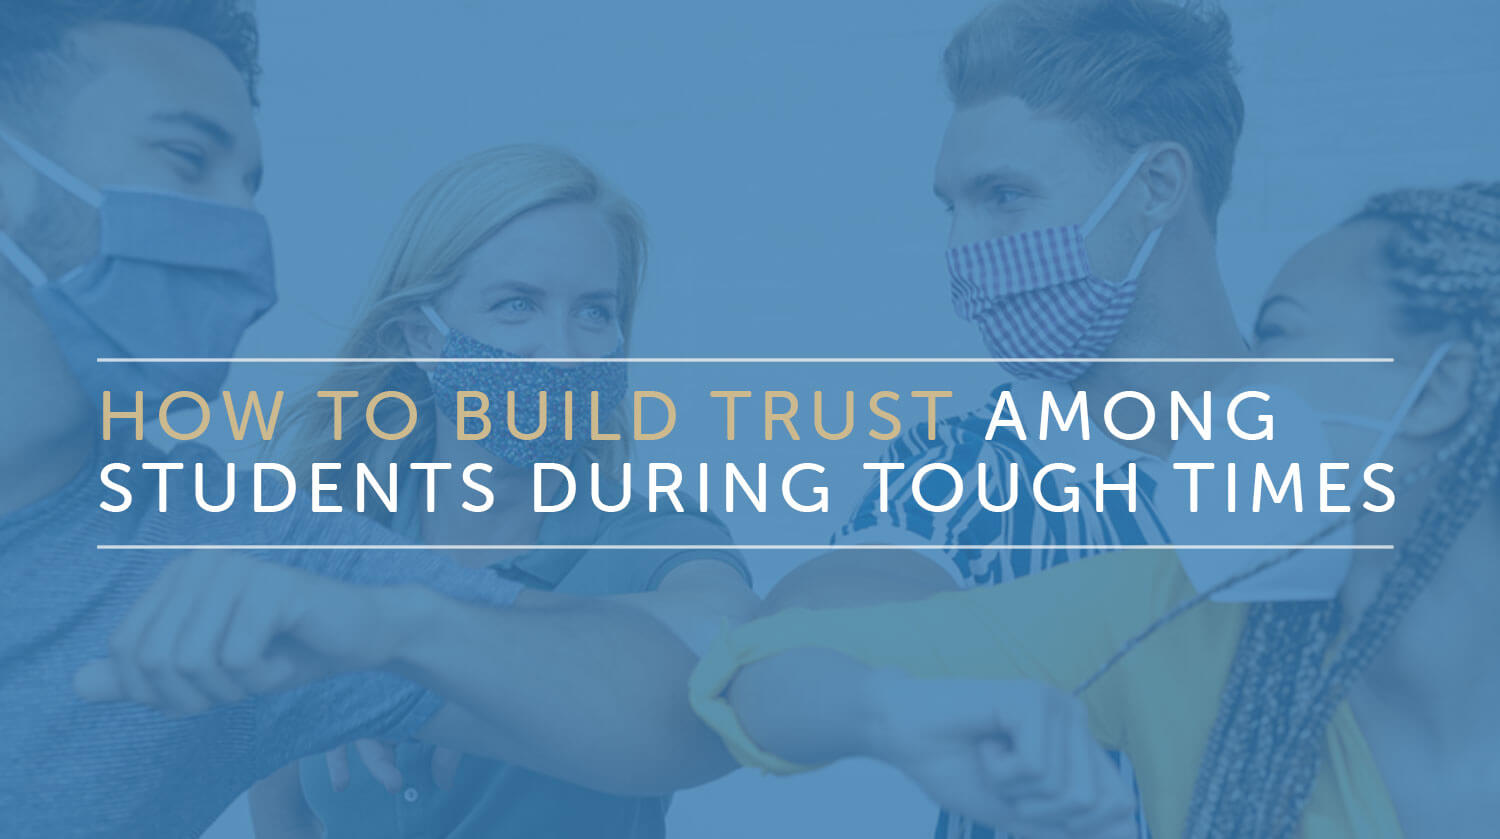 How to Build Trust Among Students During Tough Times